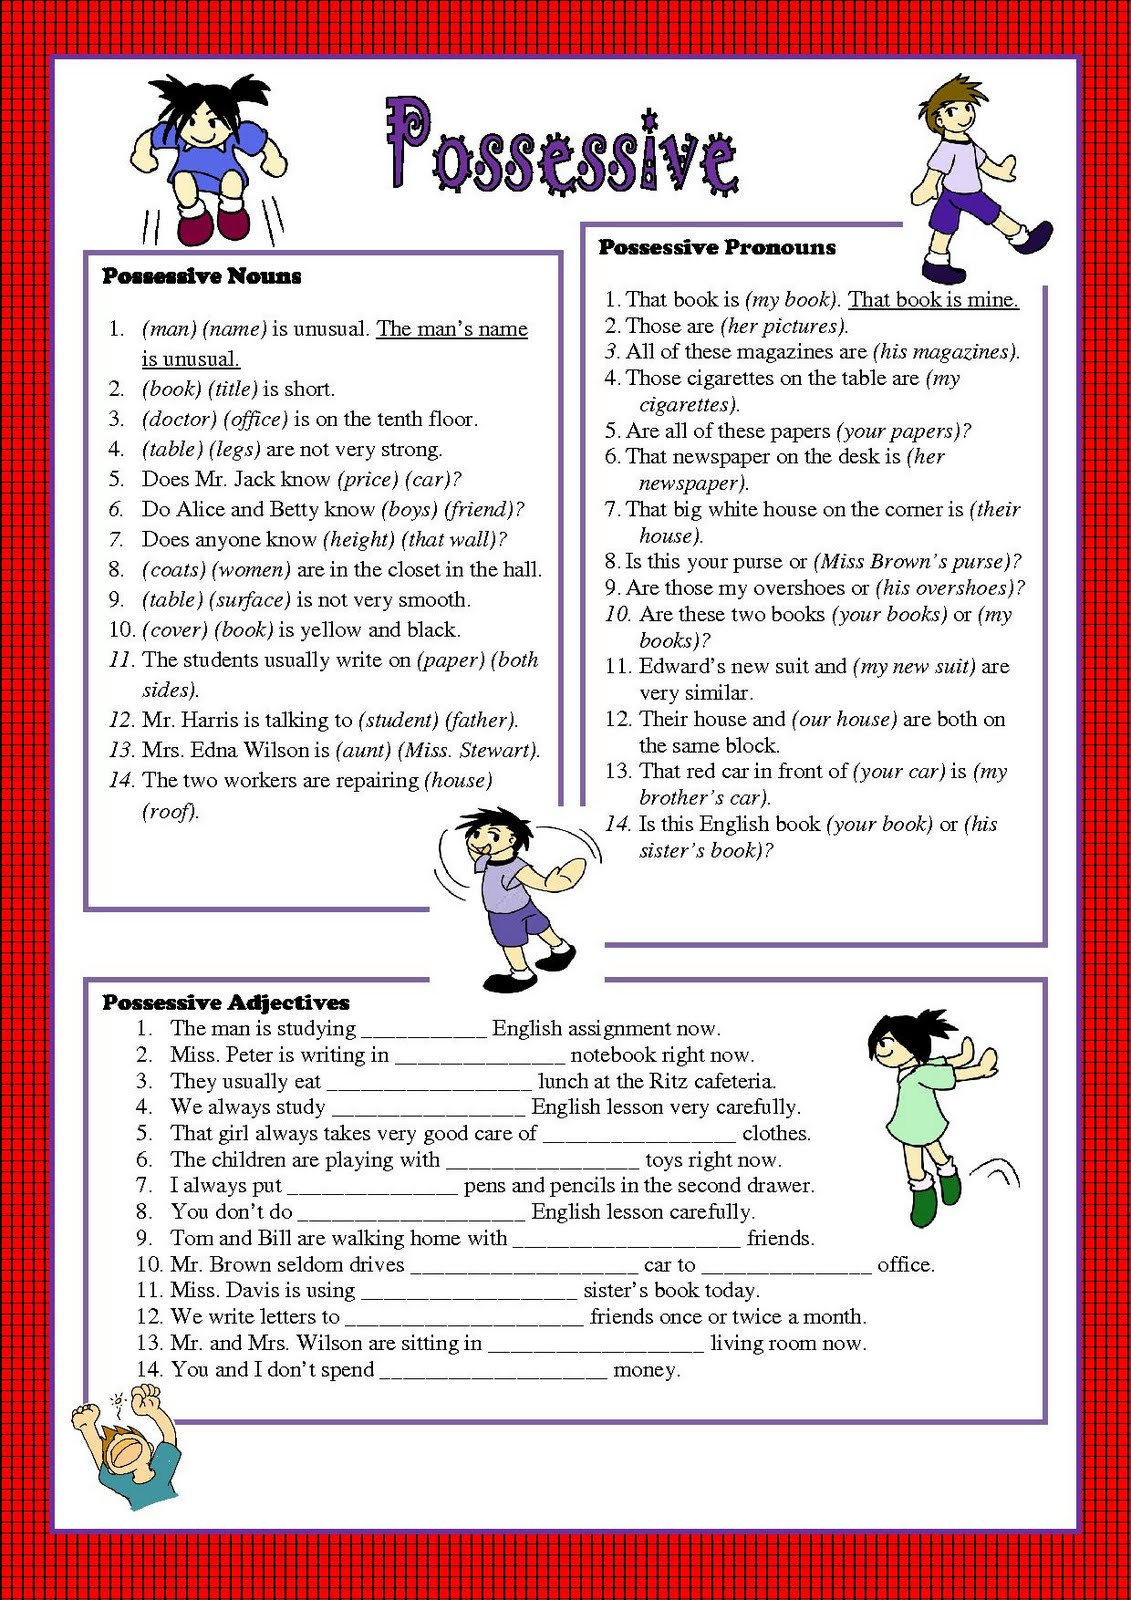 Possessive Pronouns Worksheet Printable